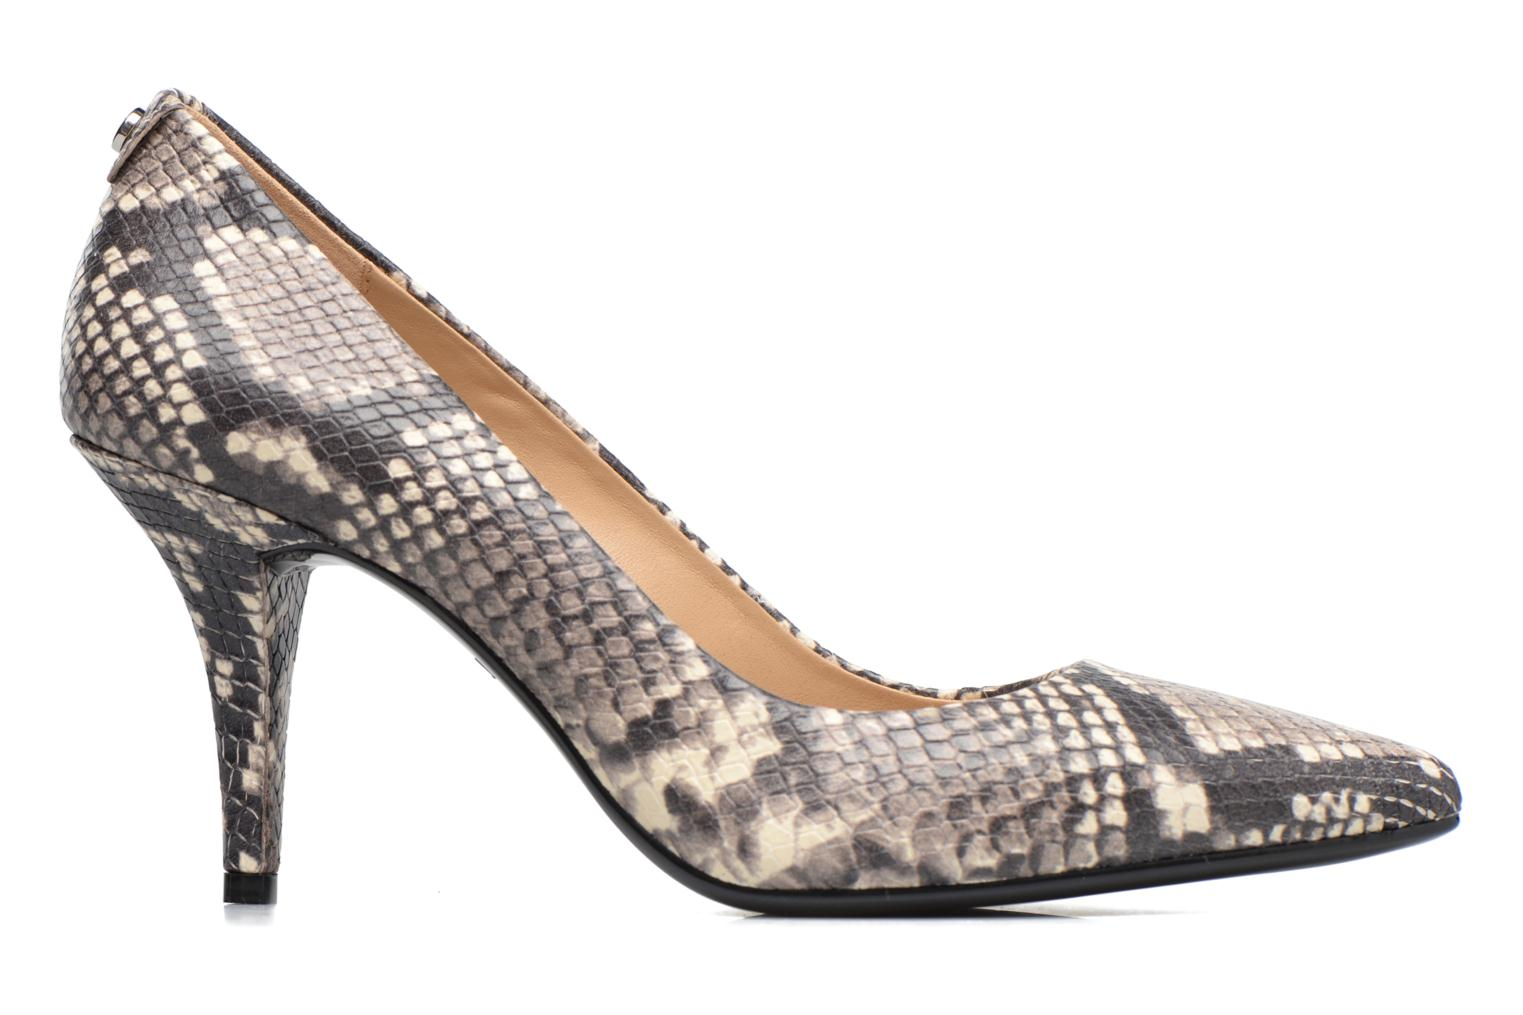 MK-Flex Mid Pump 270 Natural - Printed Snake